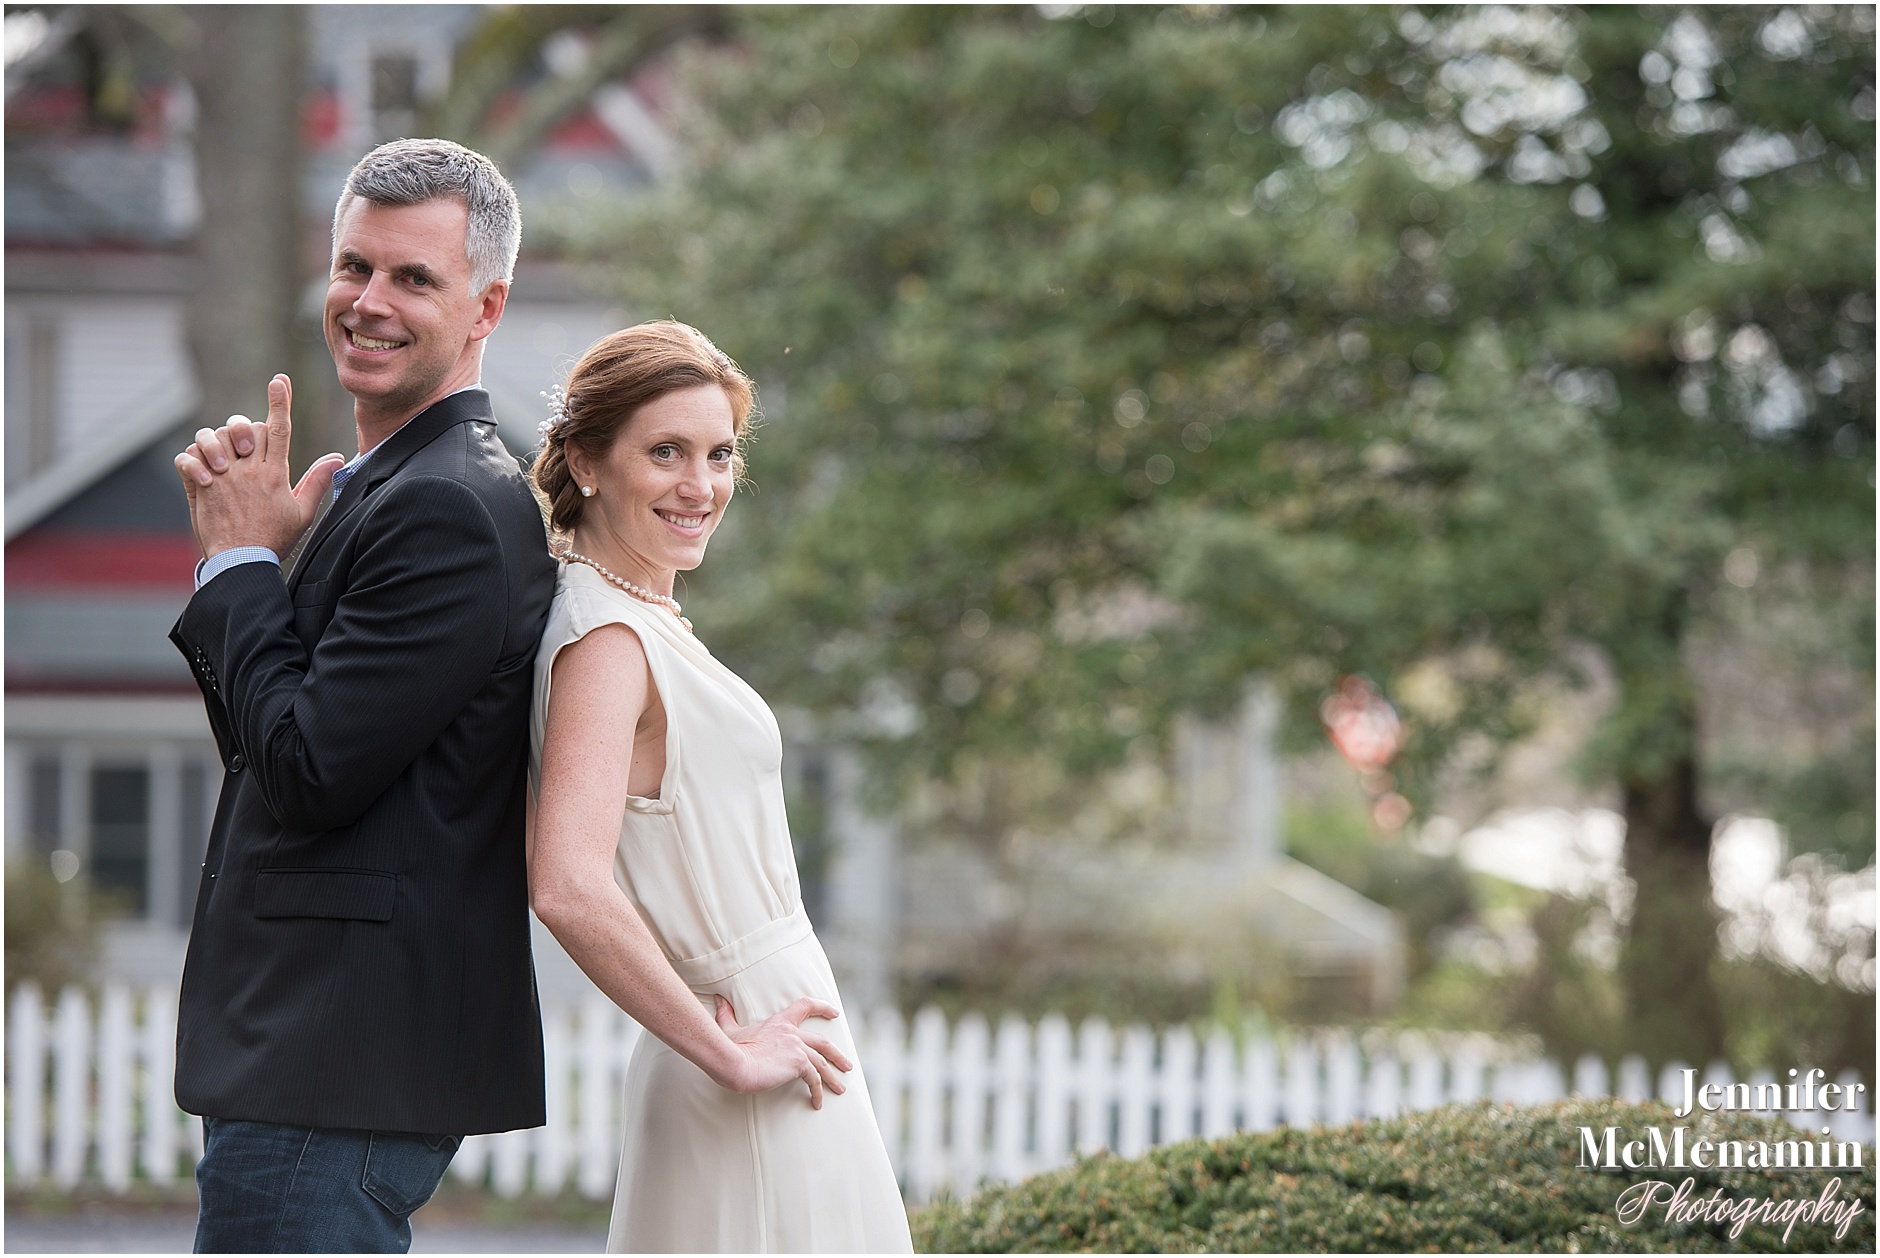 004-KnippLingle_0278-0067_Jennifer-McMenamin-Photography-Baltimore-engagement-photos